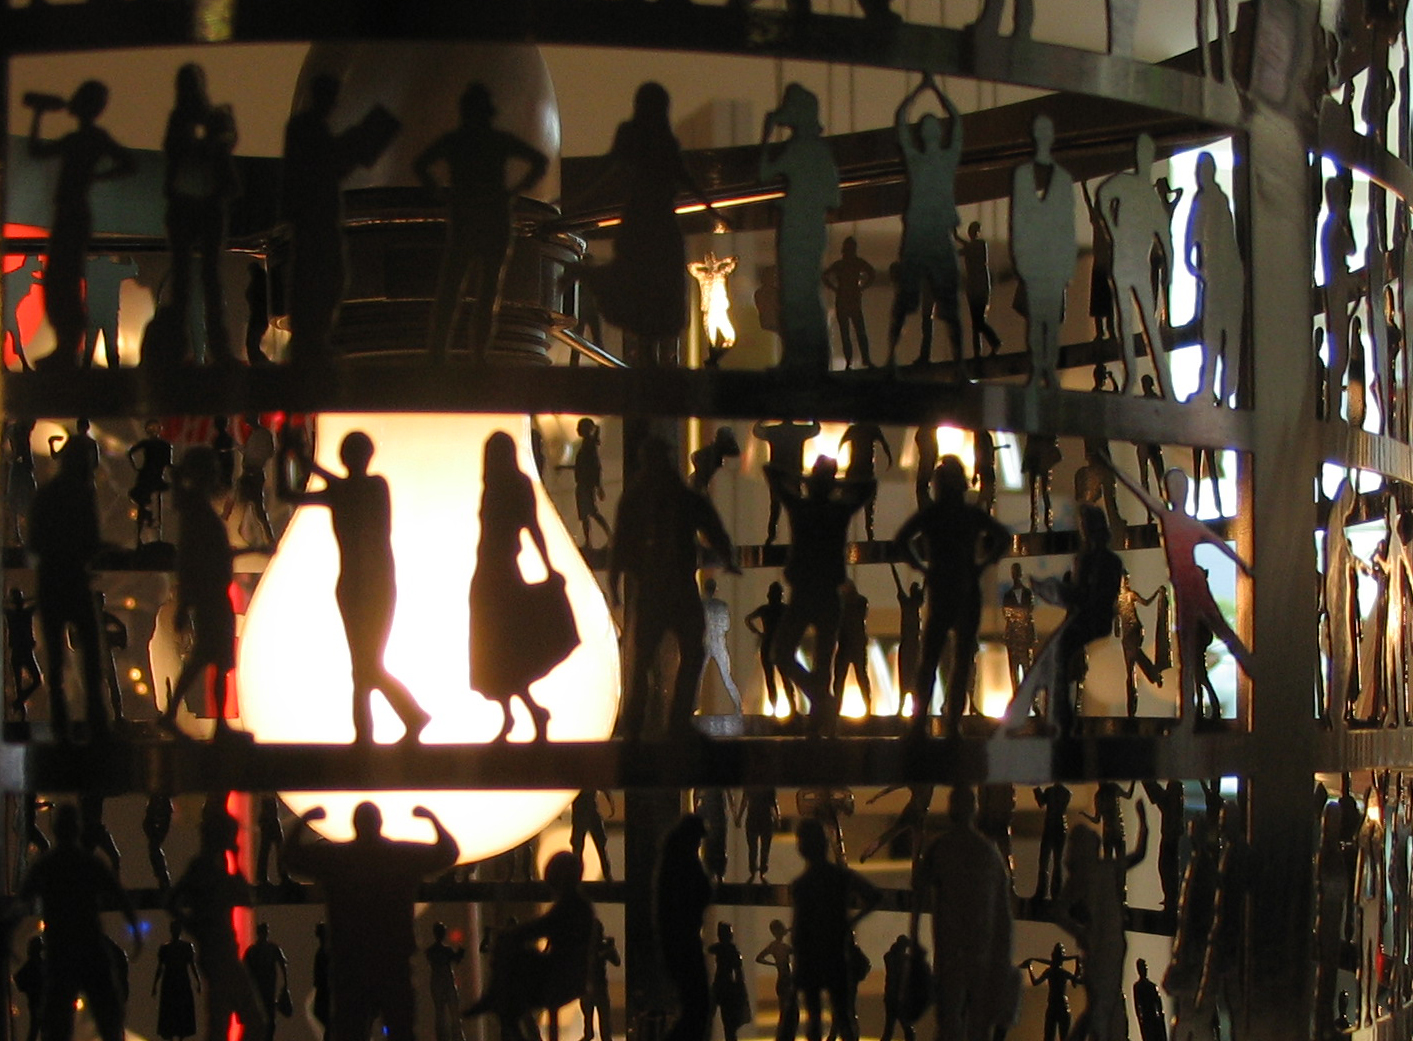 Lamp with silhouettes of people doing different activities all around it